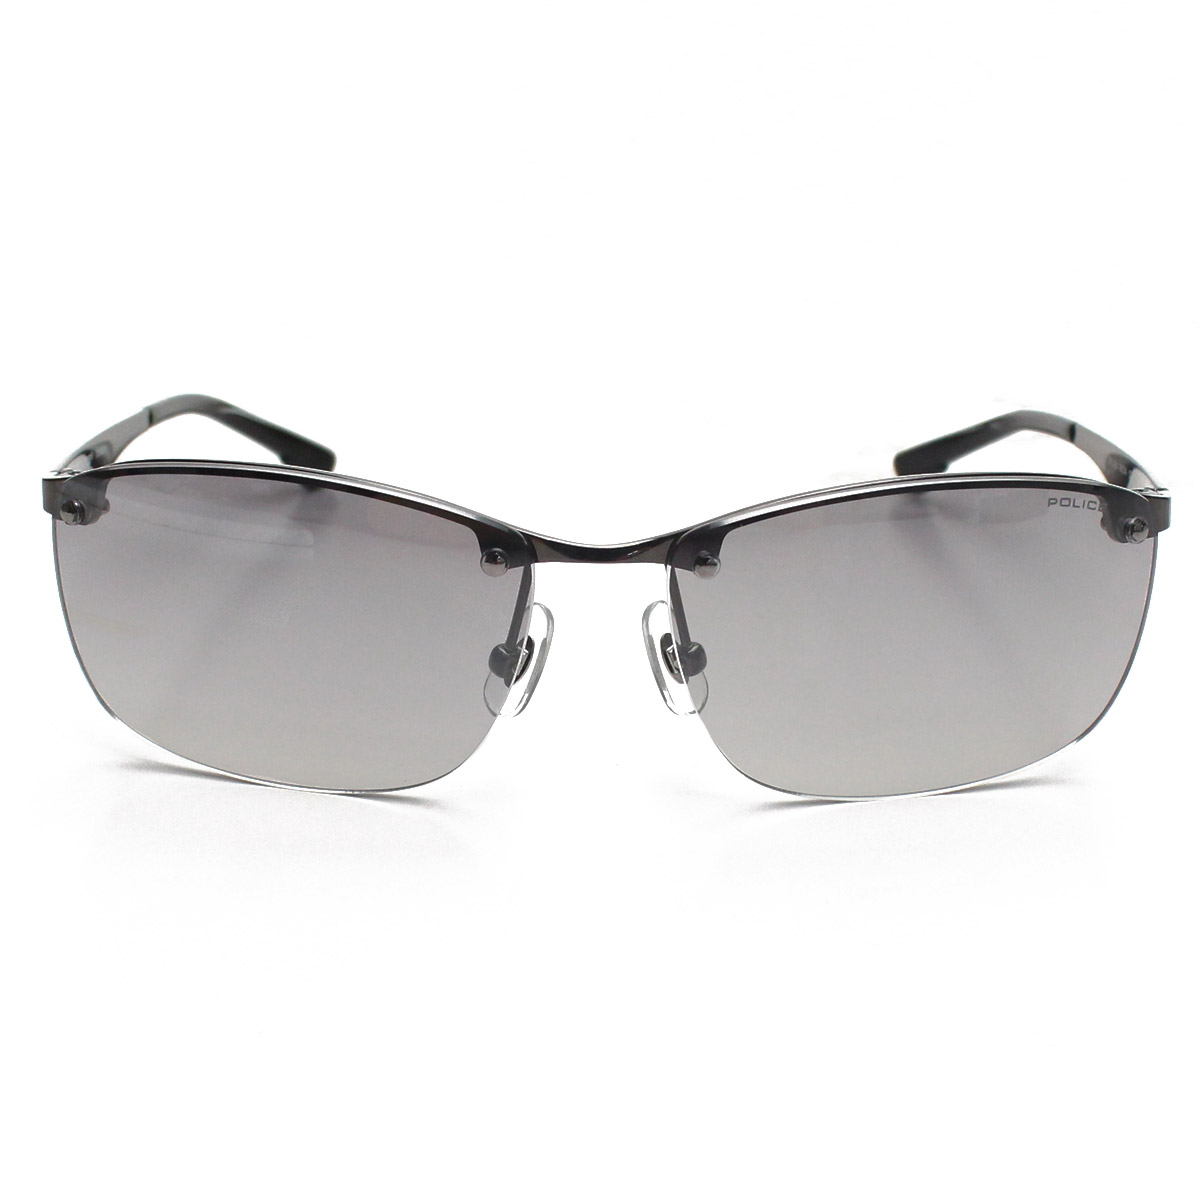 ed72a8b98be8 Police POLICE STORM storm Ney roll sunglasses and others 745J 568S black